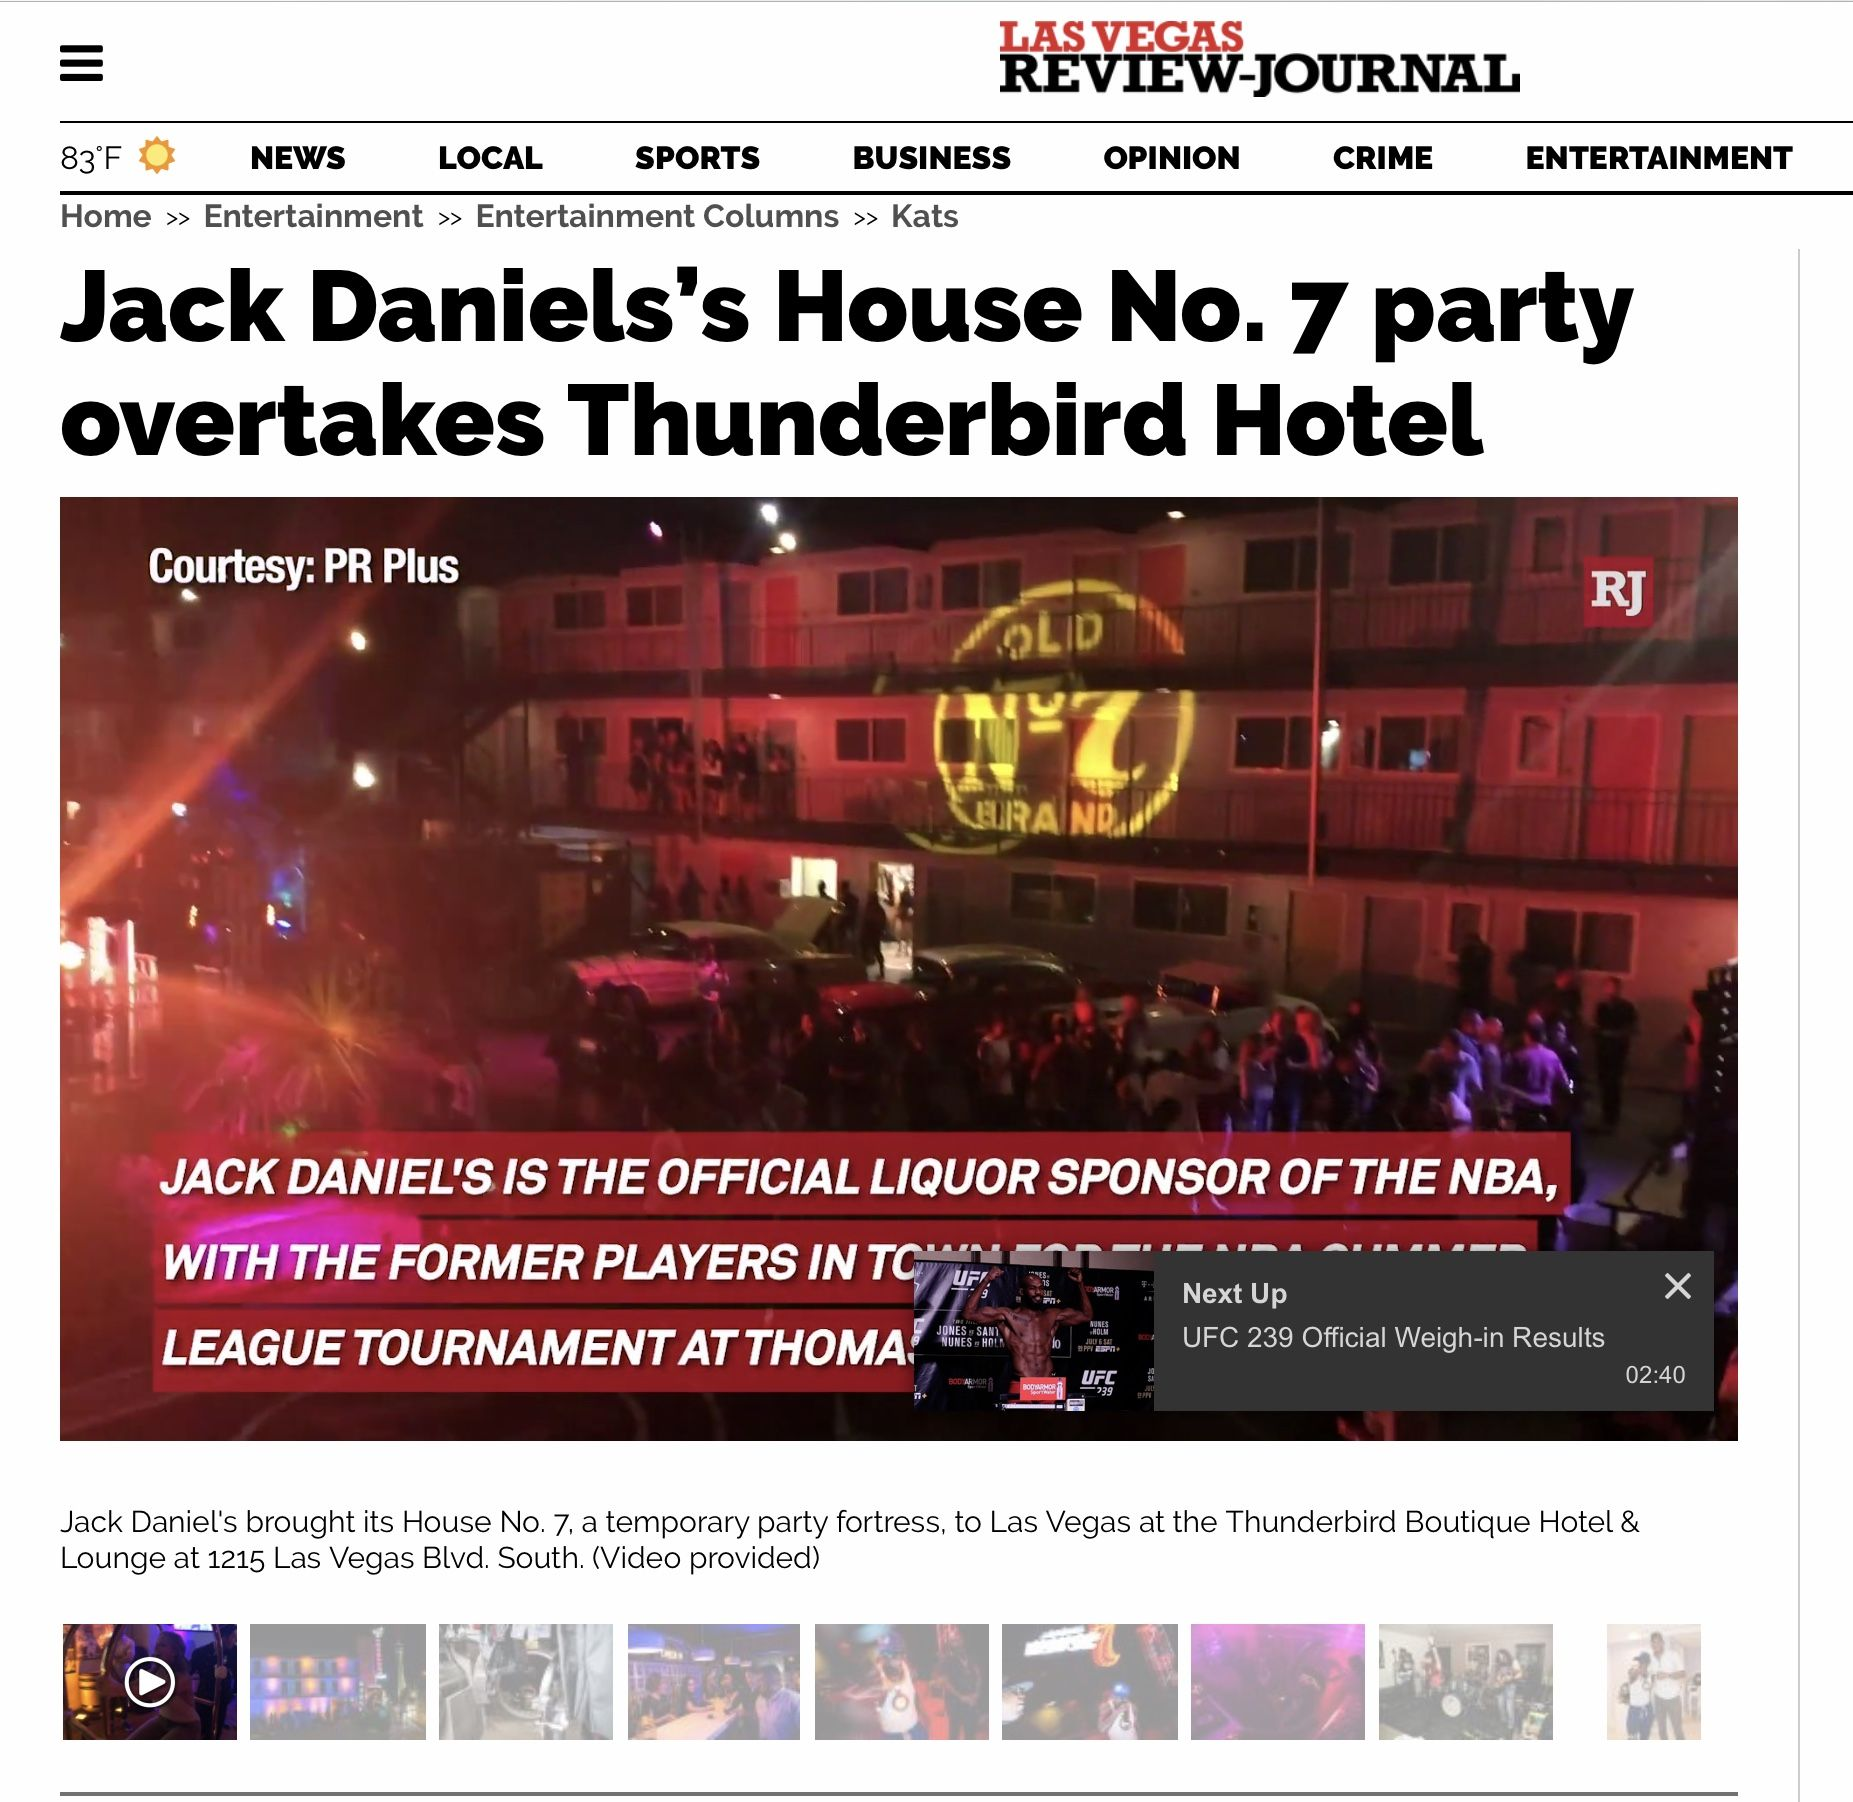 Jack Daniels S House No 7 Party Overtakes Thunderbird Hotel Thunderbird Hotel Jack Daniels Las Vegas Business